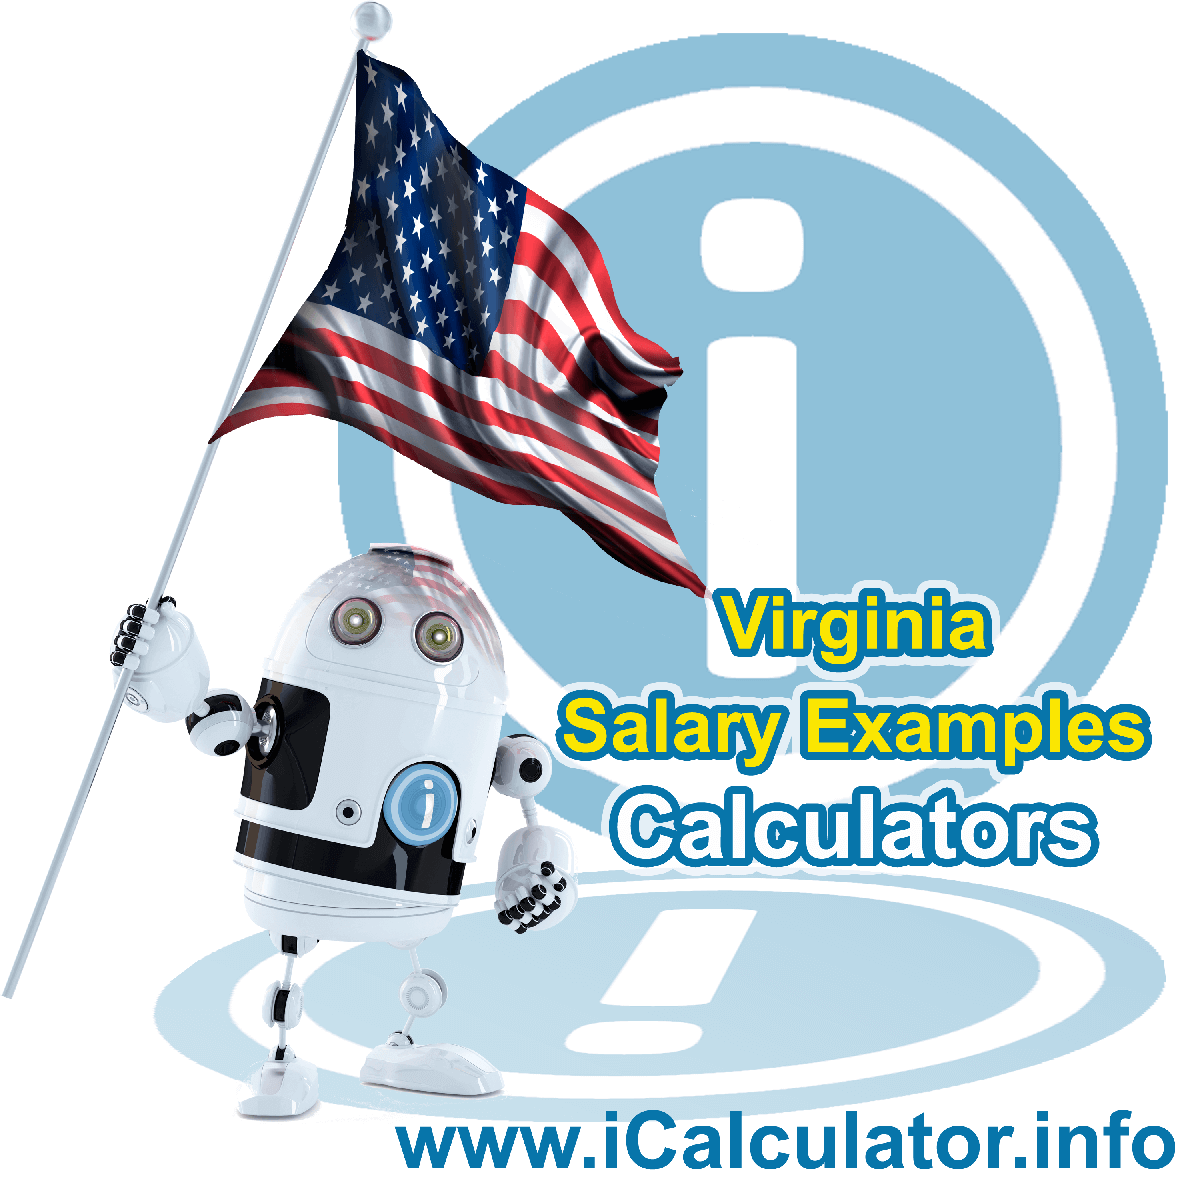 Virginia Salary Example for $40,000.00 in 2021 | iCalculator | $40,000.00 salary example for employee and employer paying Virginia State tincome taxes. Detailed salary after tax calculation including Virginia State Tax, Federal State Tax, Medicare Deductions, Social Security, Capital Gains and other income tax and salary deductions complete with supporting Virginia state tax tables